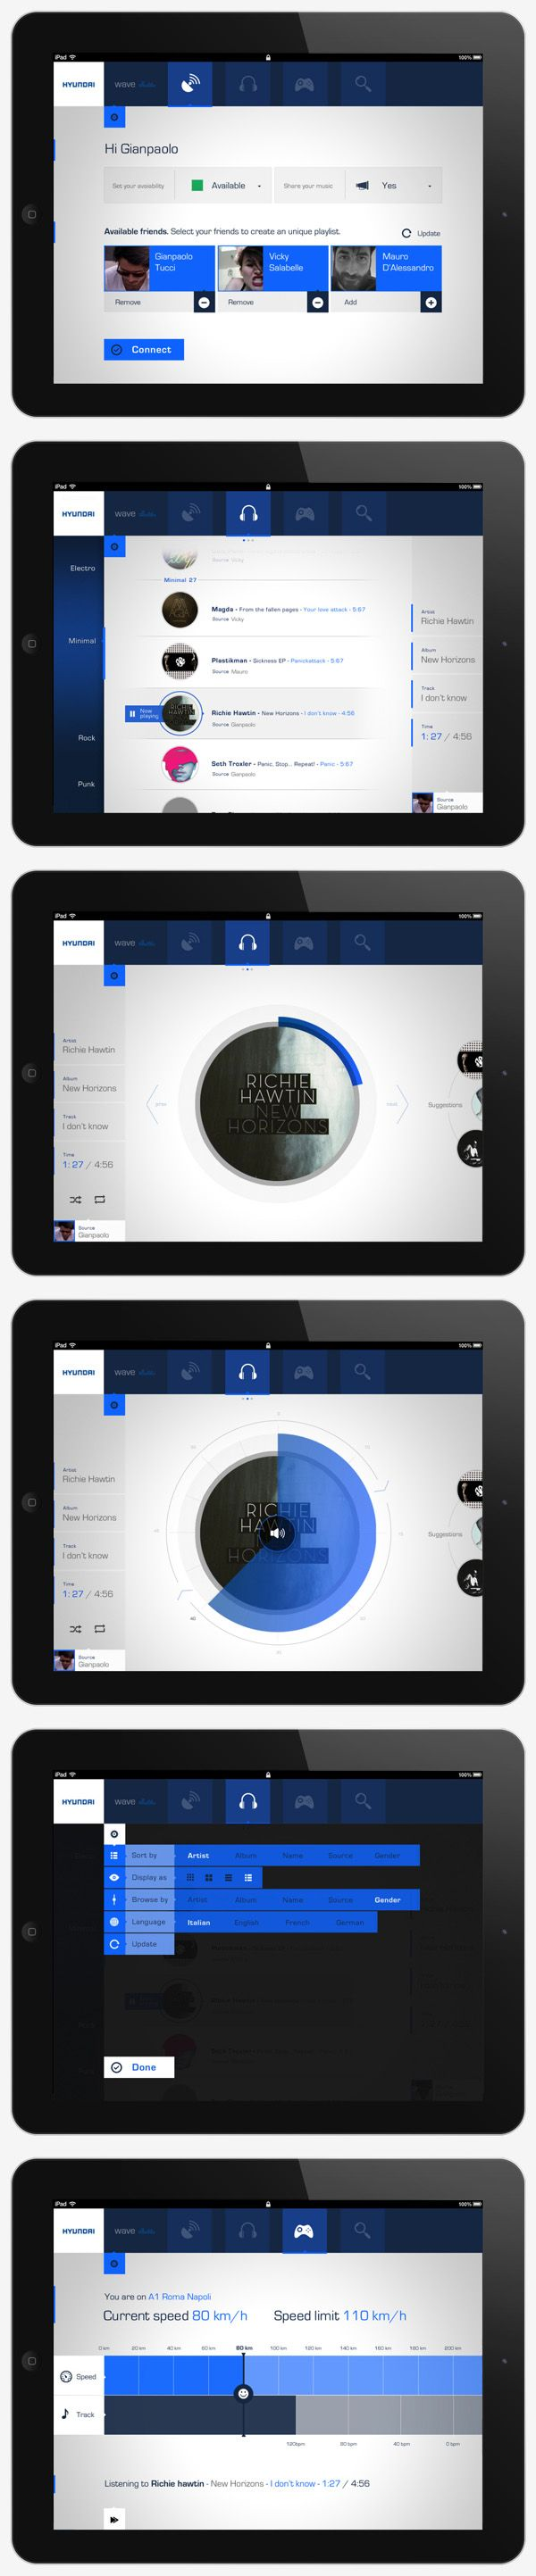 #iPad #app by Gianpaolo Tucci, via #Behance #Mobile #Digital - some nice visualization elements and super clean too